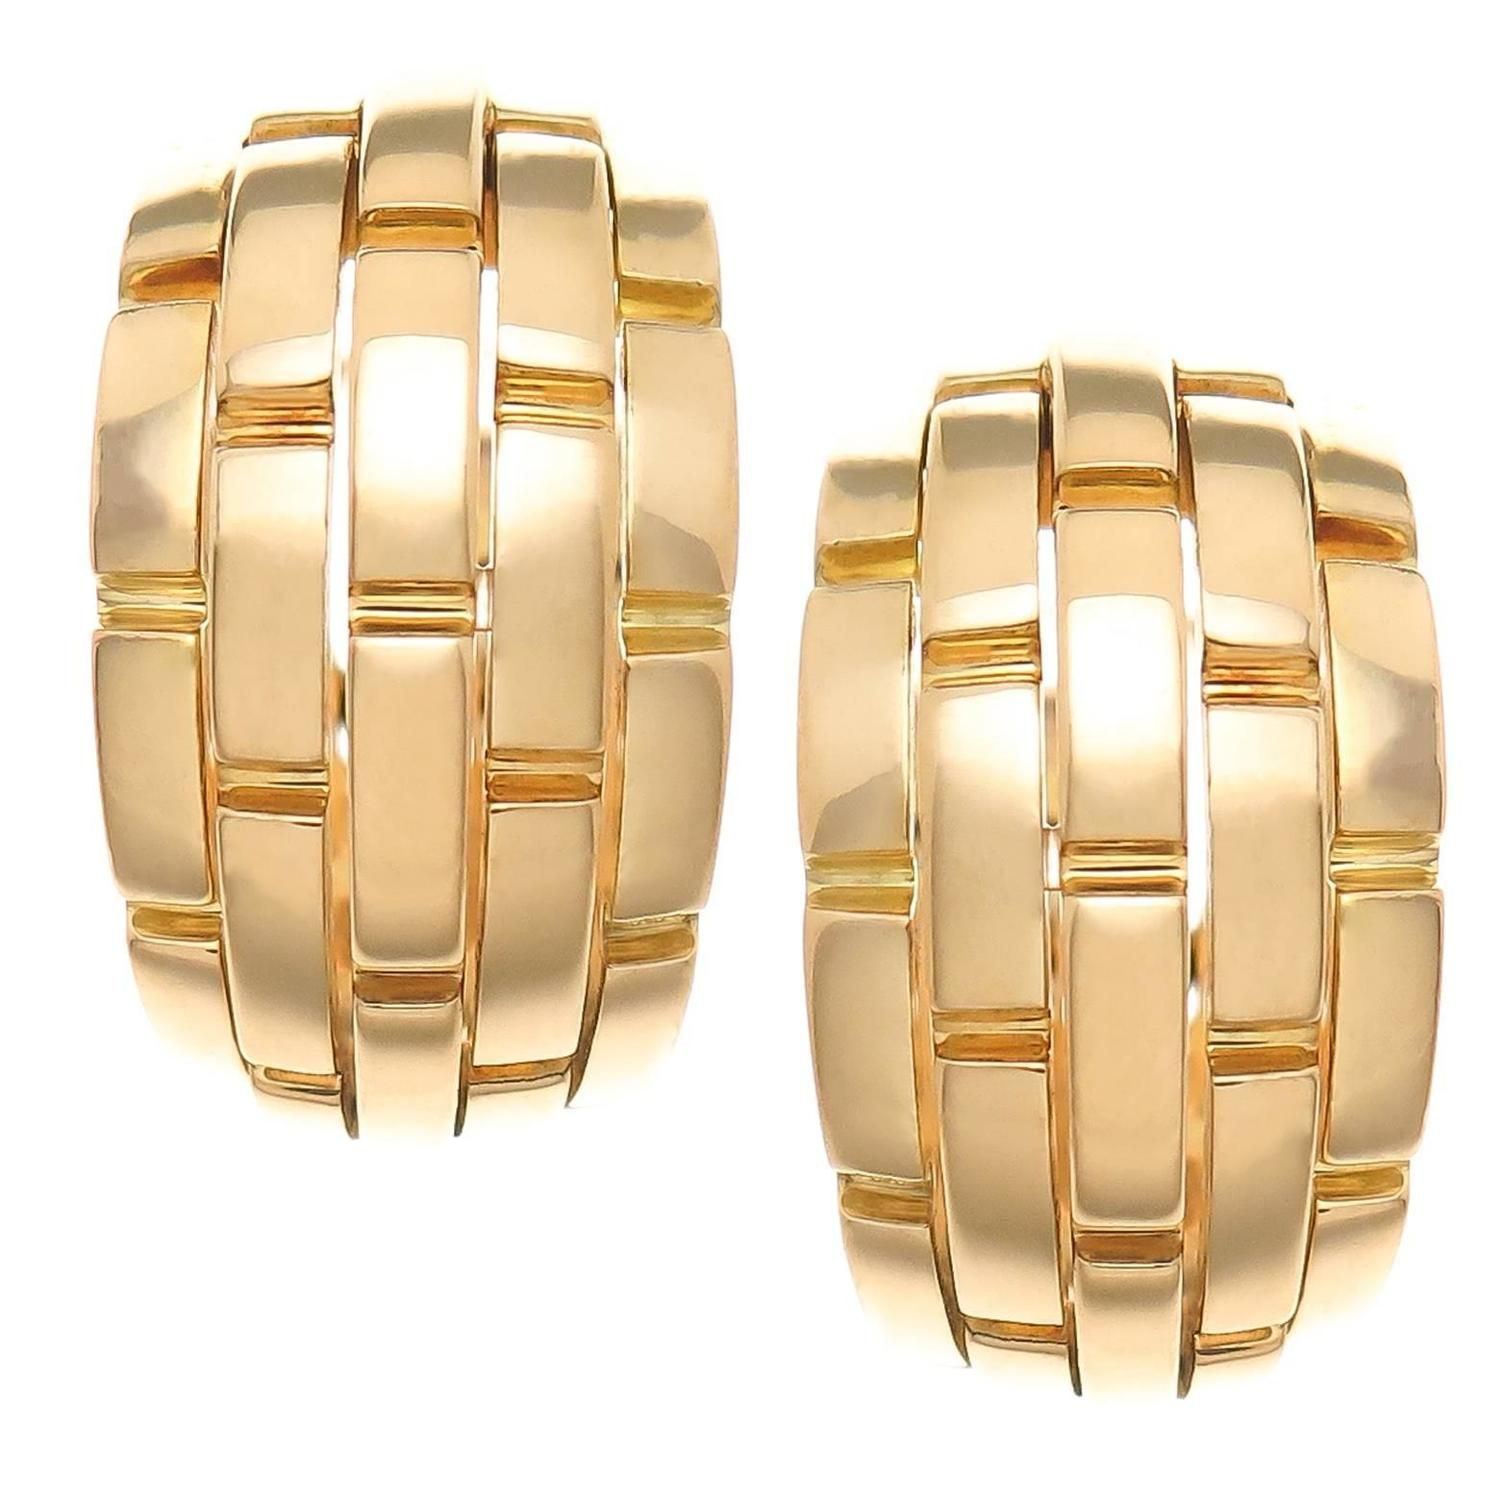 47fdb3b70d533 Cartier Maillon Panthere Gold Earrings in 2019 | Unique Earrings ...